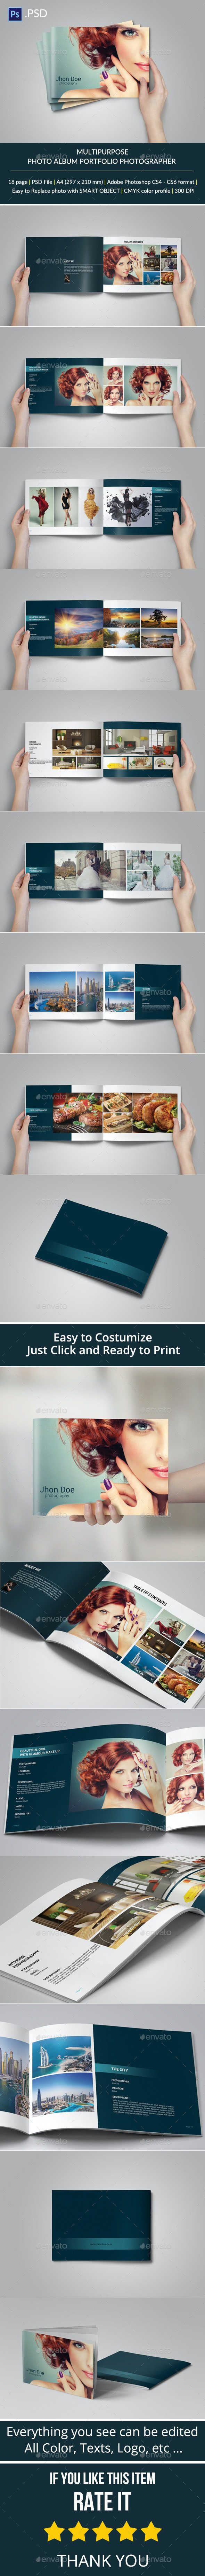 Multipurpose Brochure or Photo Album - Portfolio Brochures